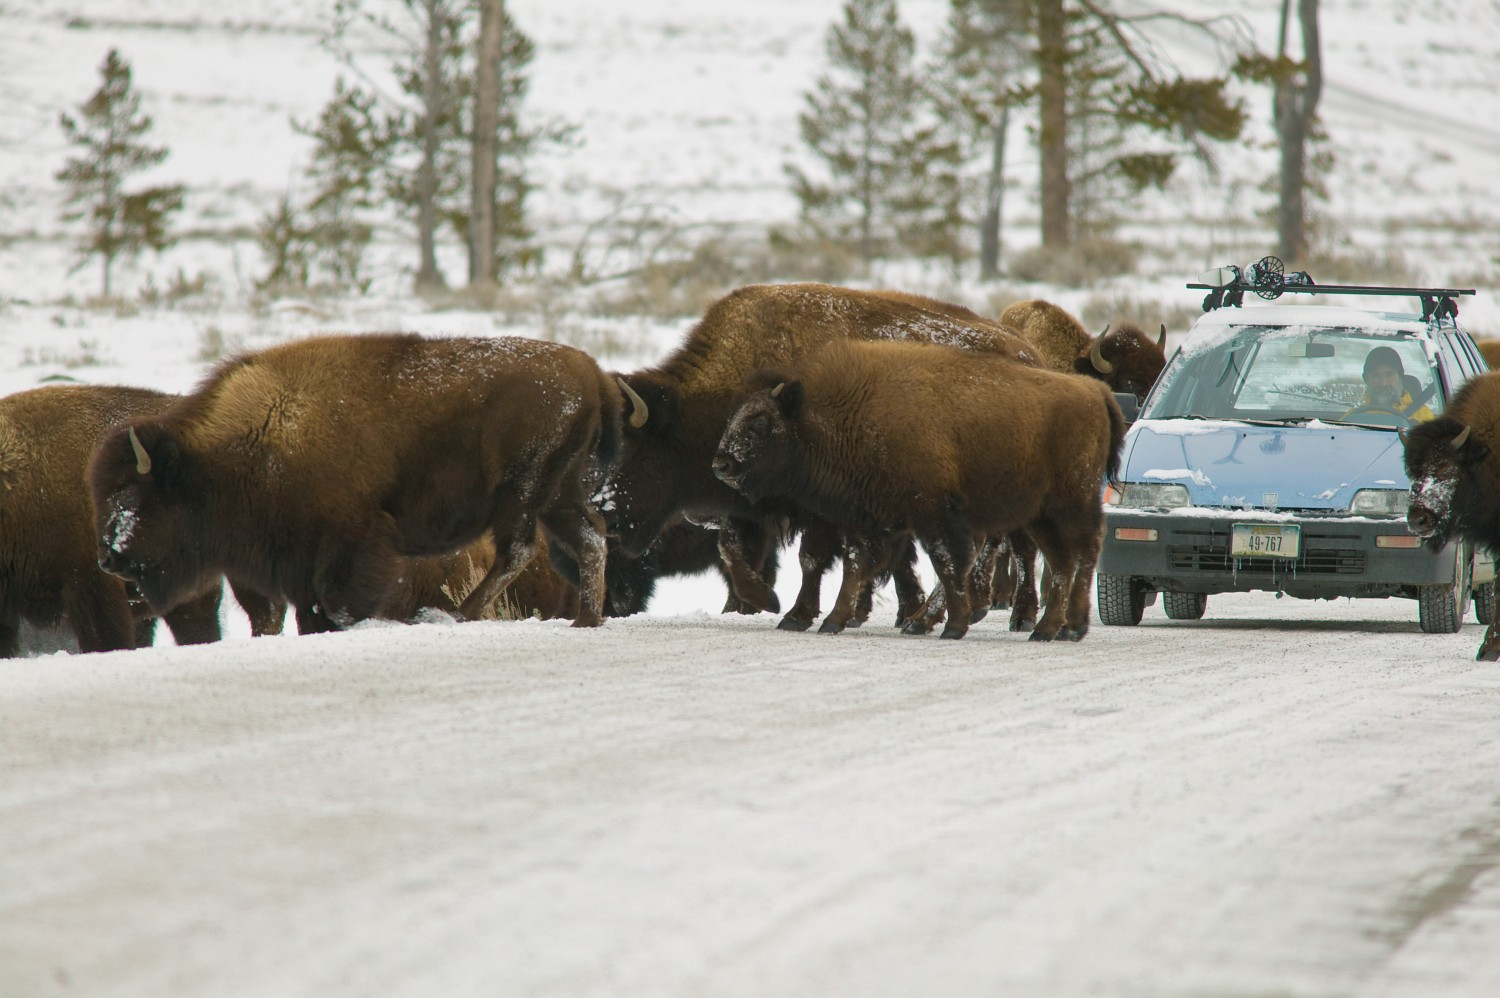 Bison on the road, Yellowstone National Park in winter.